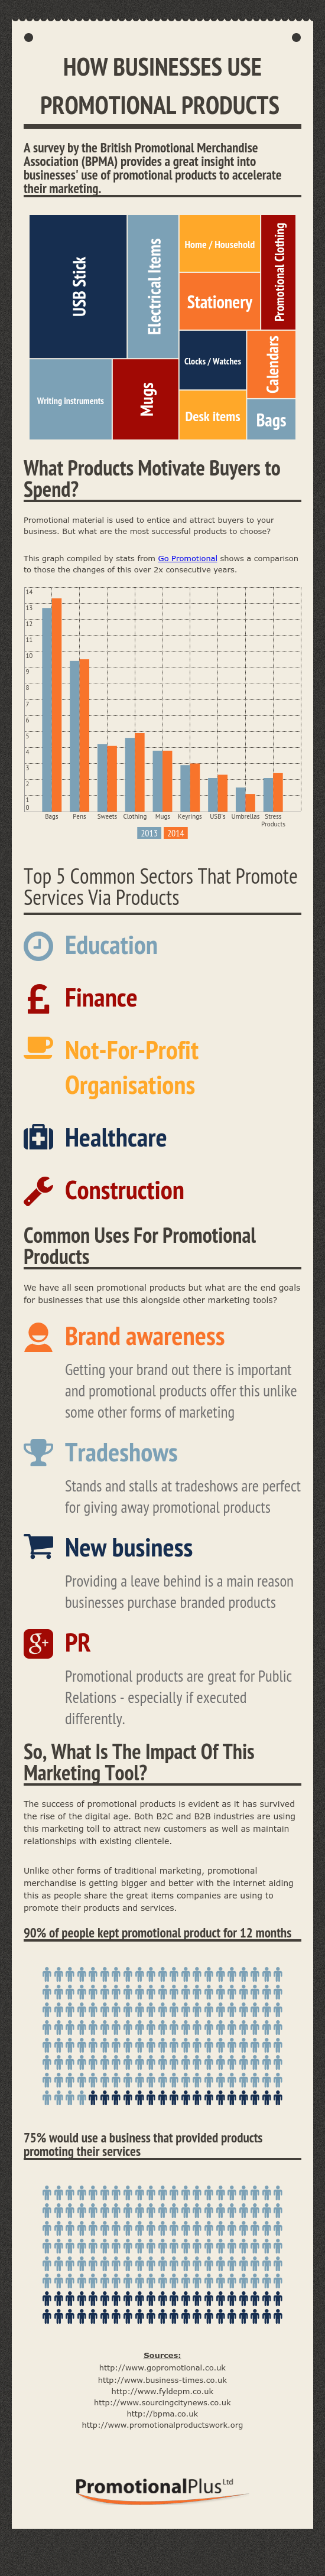 How-Businesses-Use-Promotional-Products